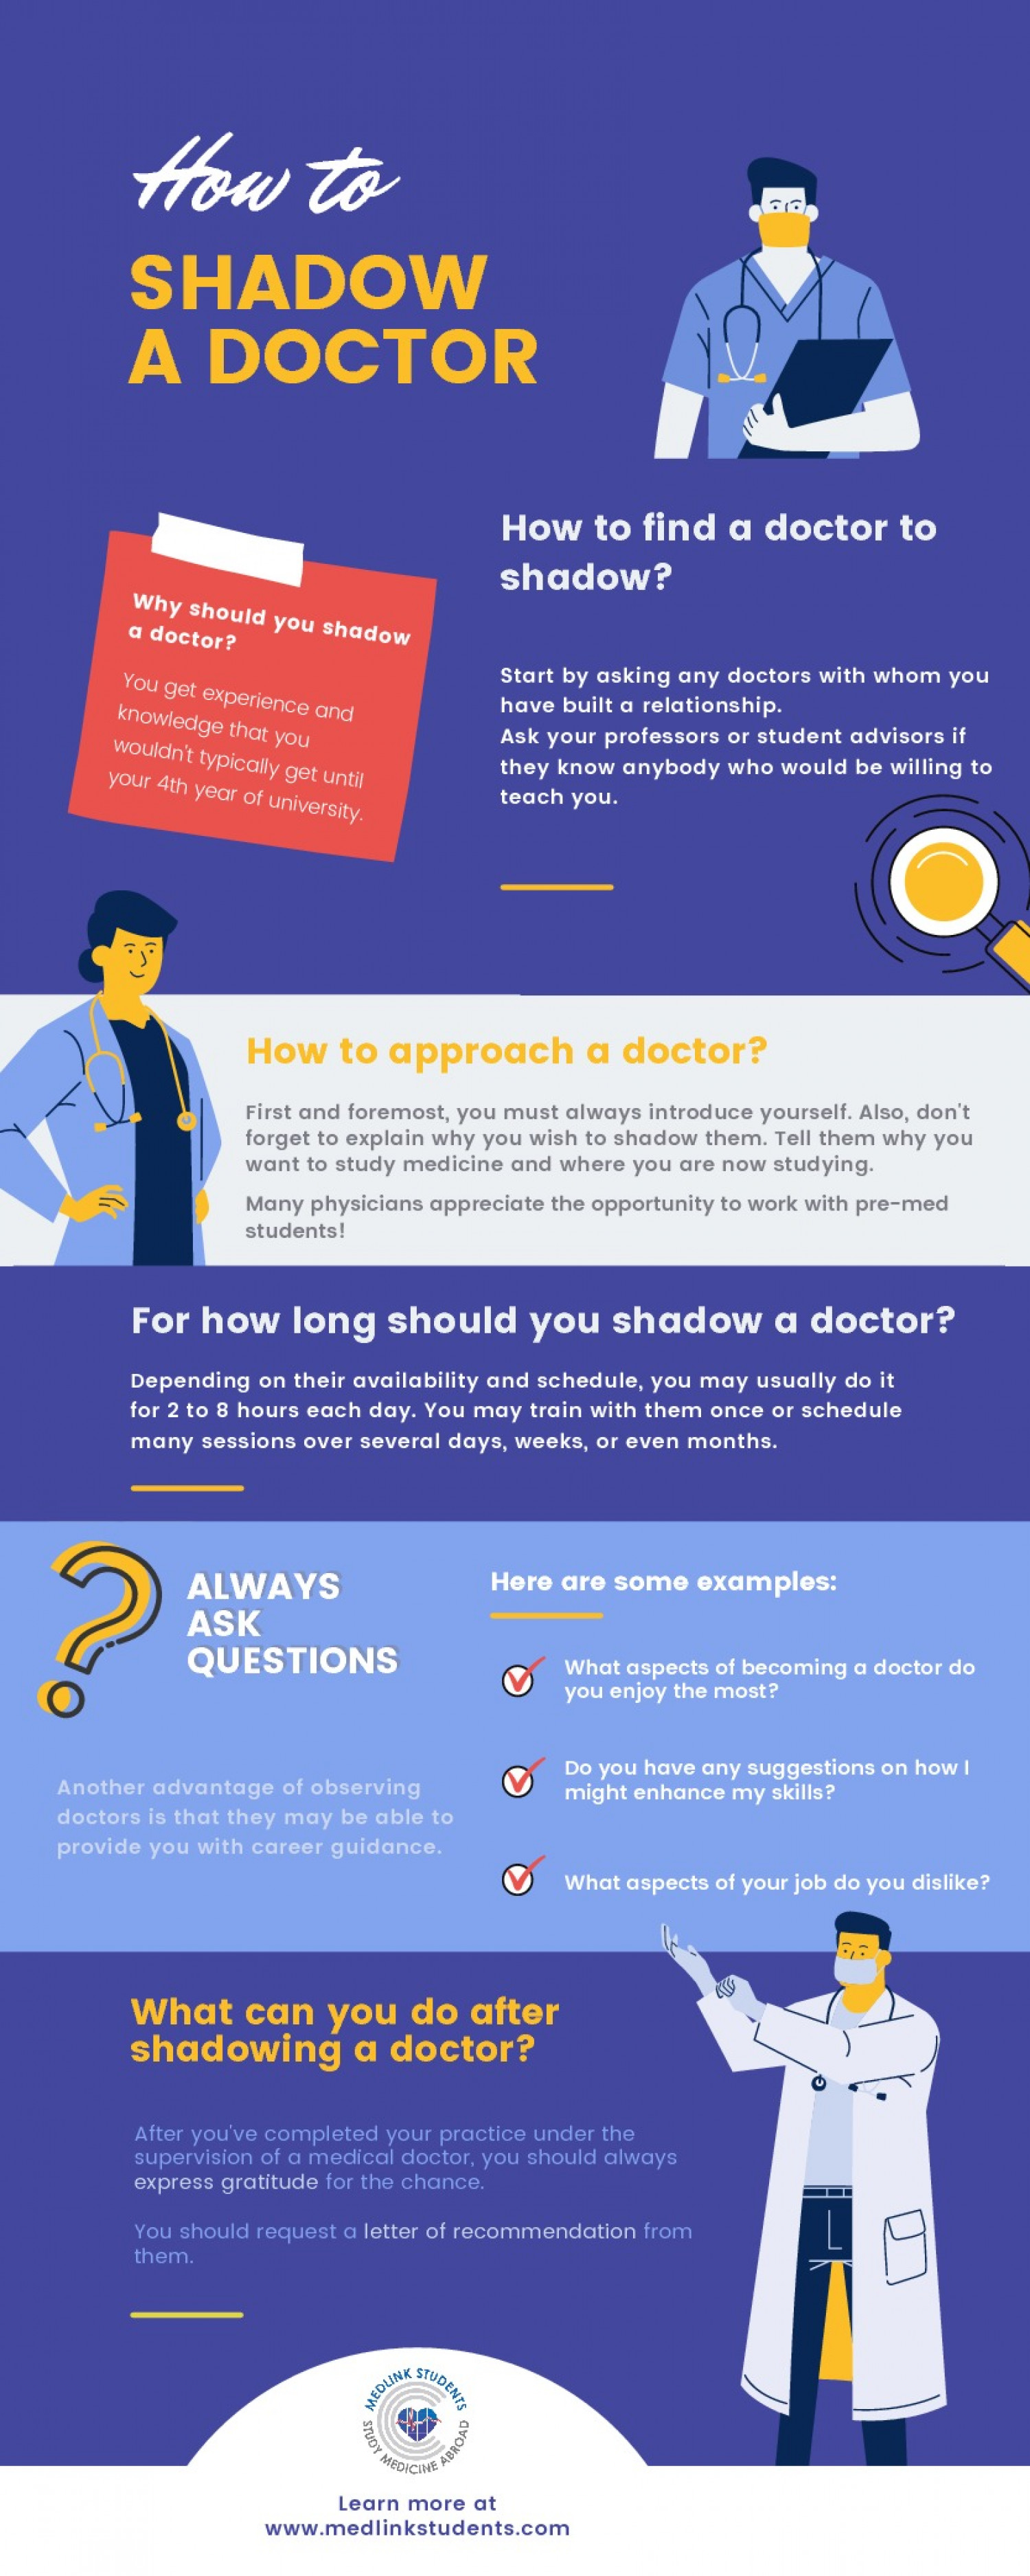 How To Shadow a Doctor Infographic